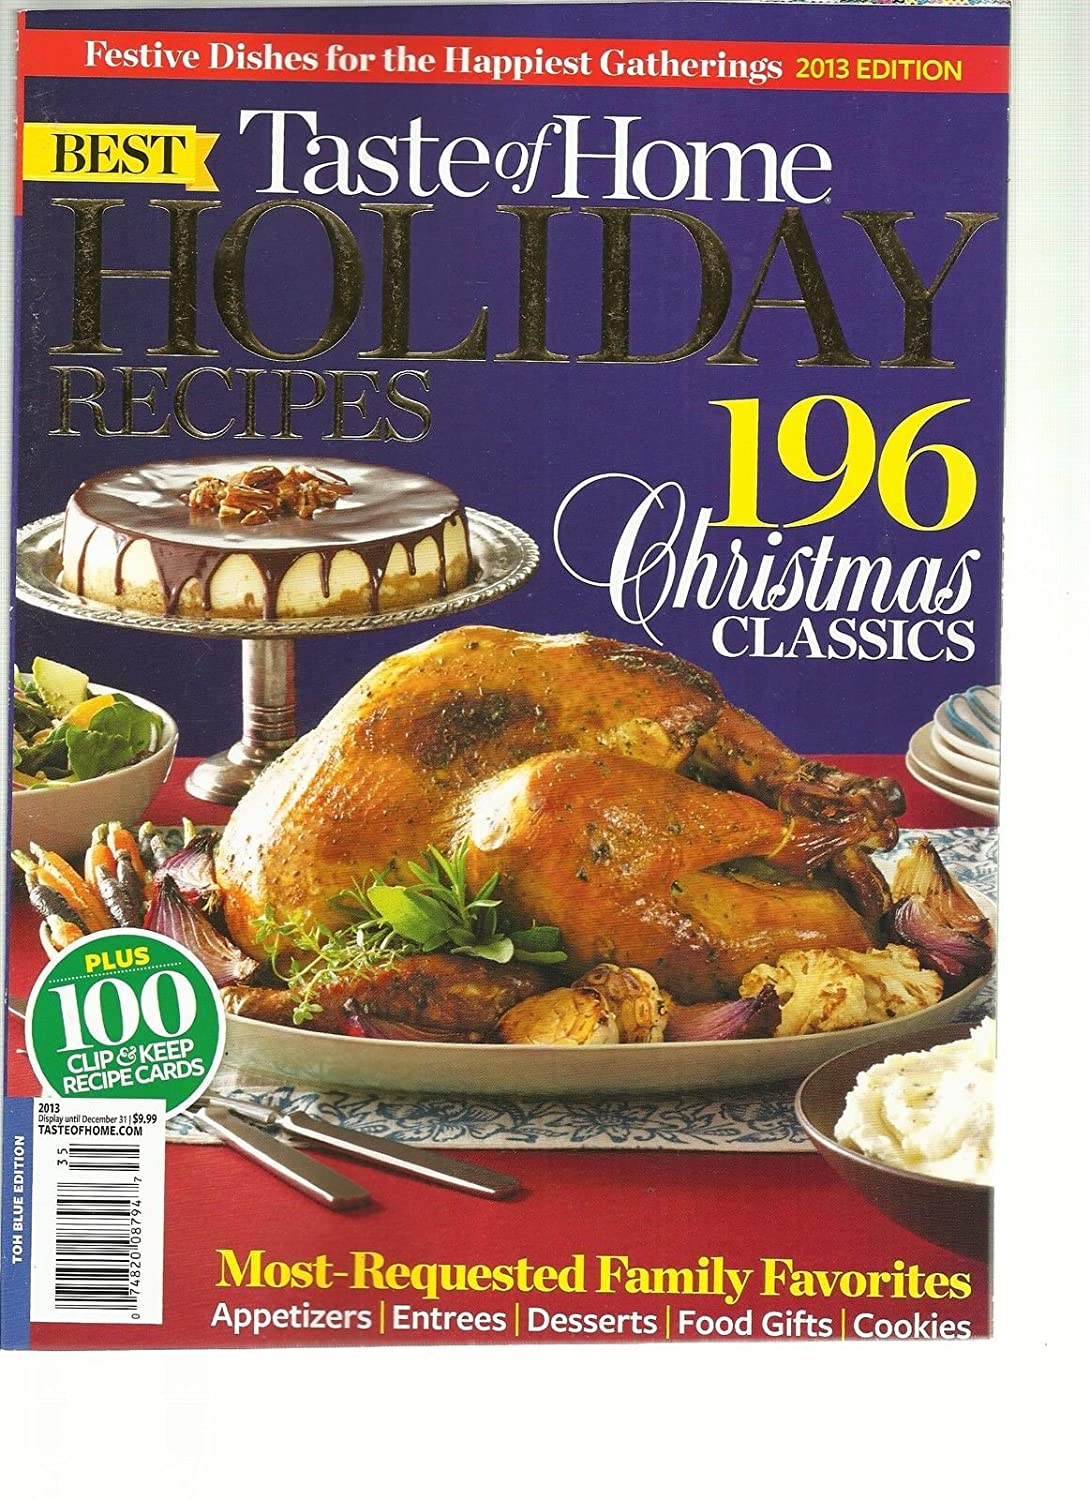 TASTE OF HOME, 2013 EDITION BEST HOLIDAY RECIPES (196 CHRISTMAS CLASSICS) s3457